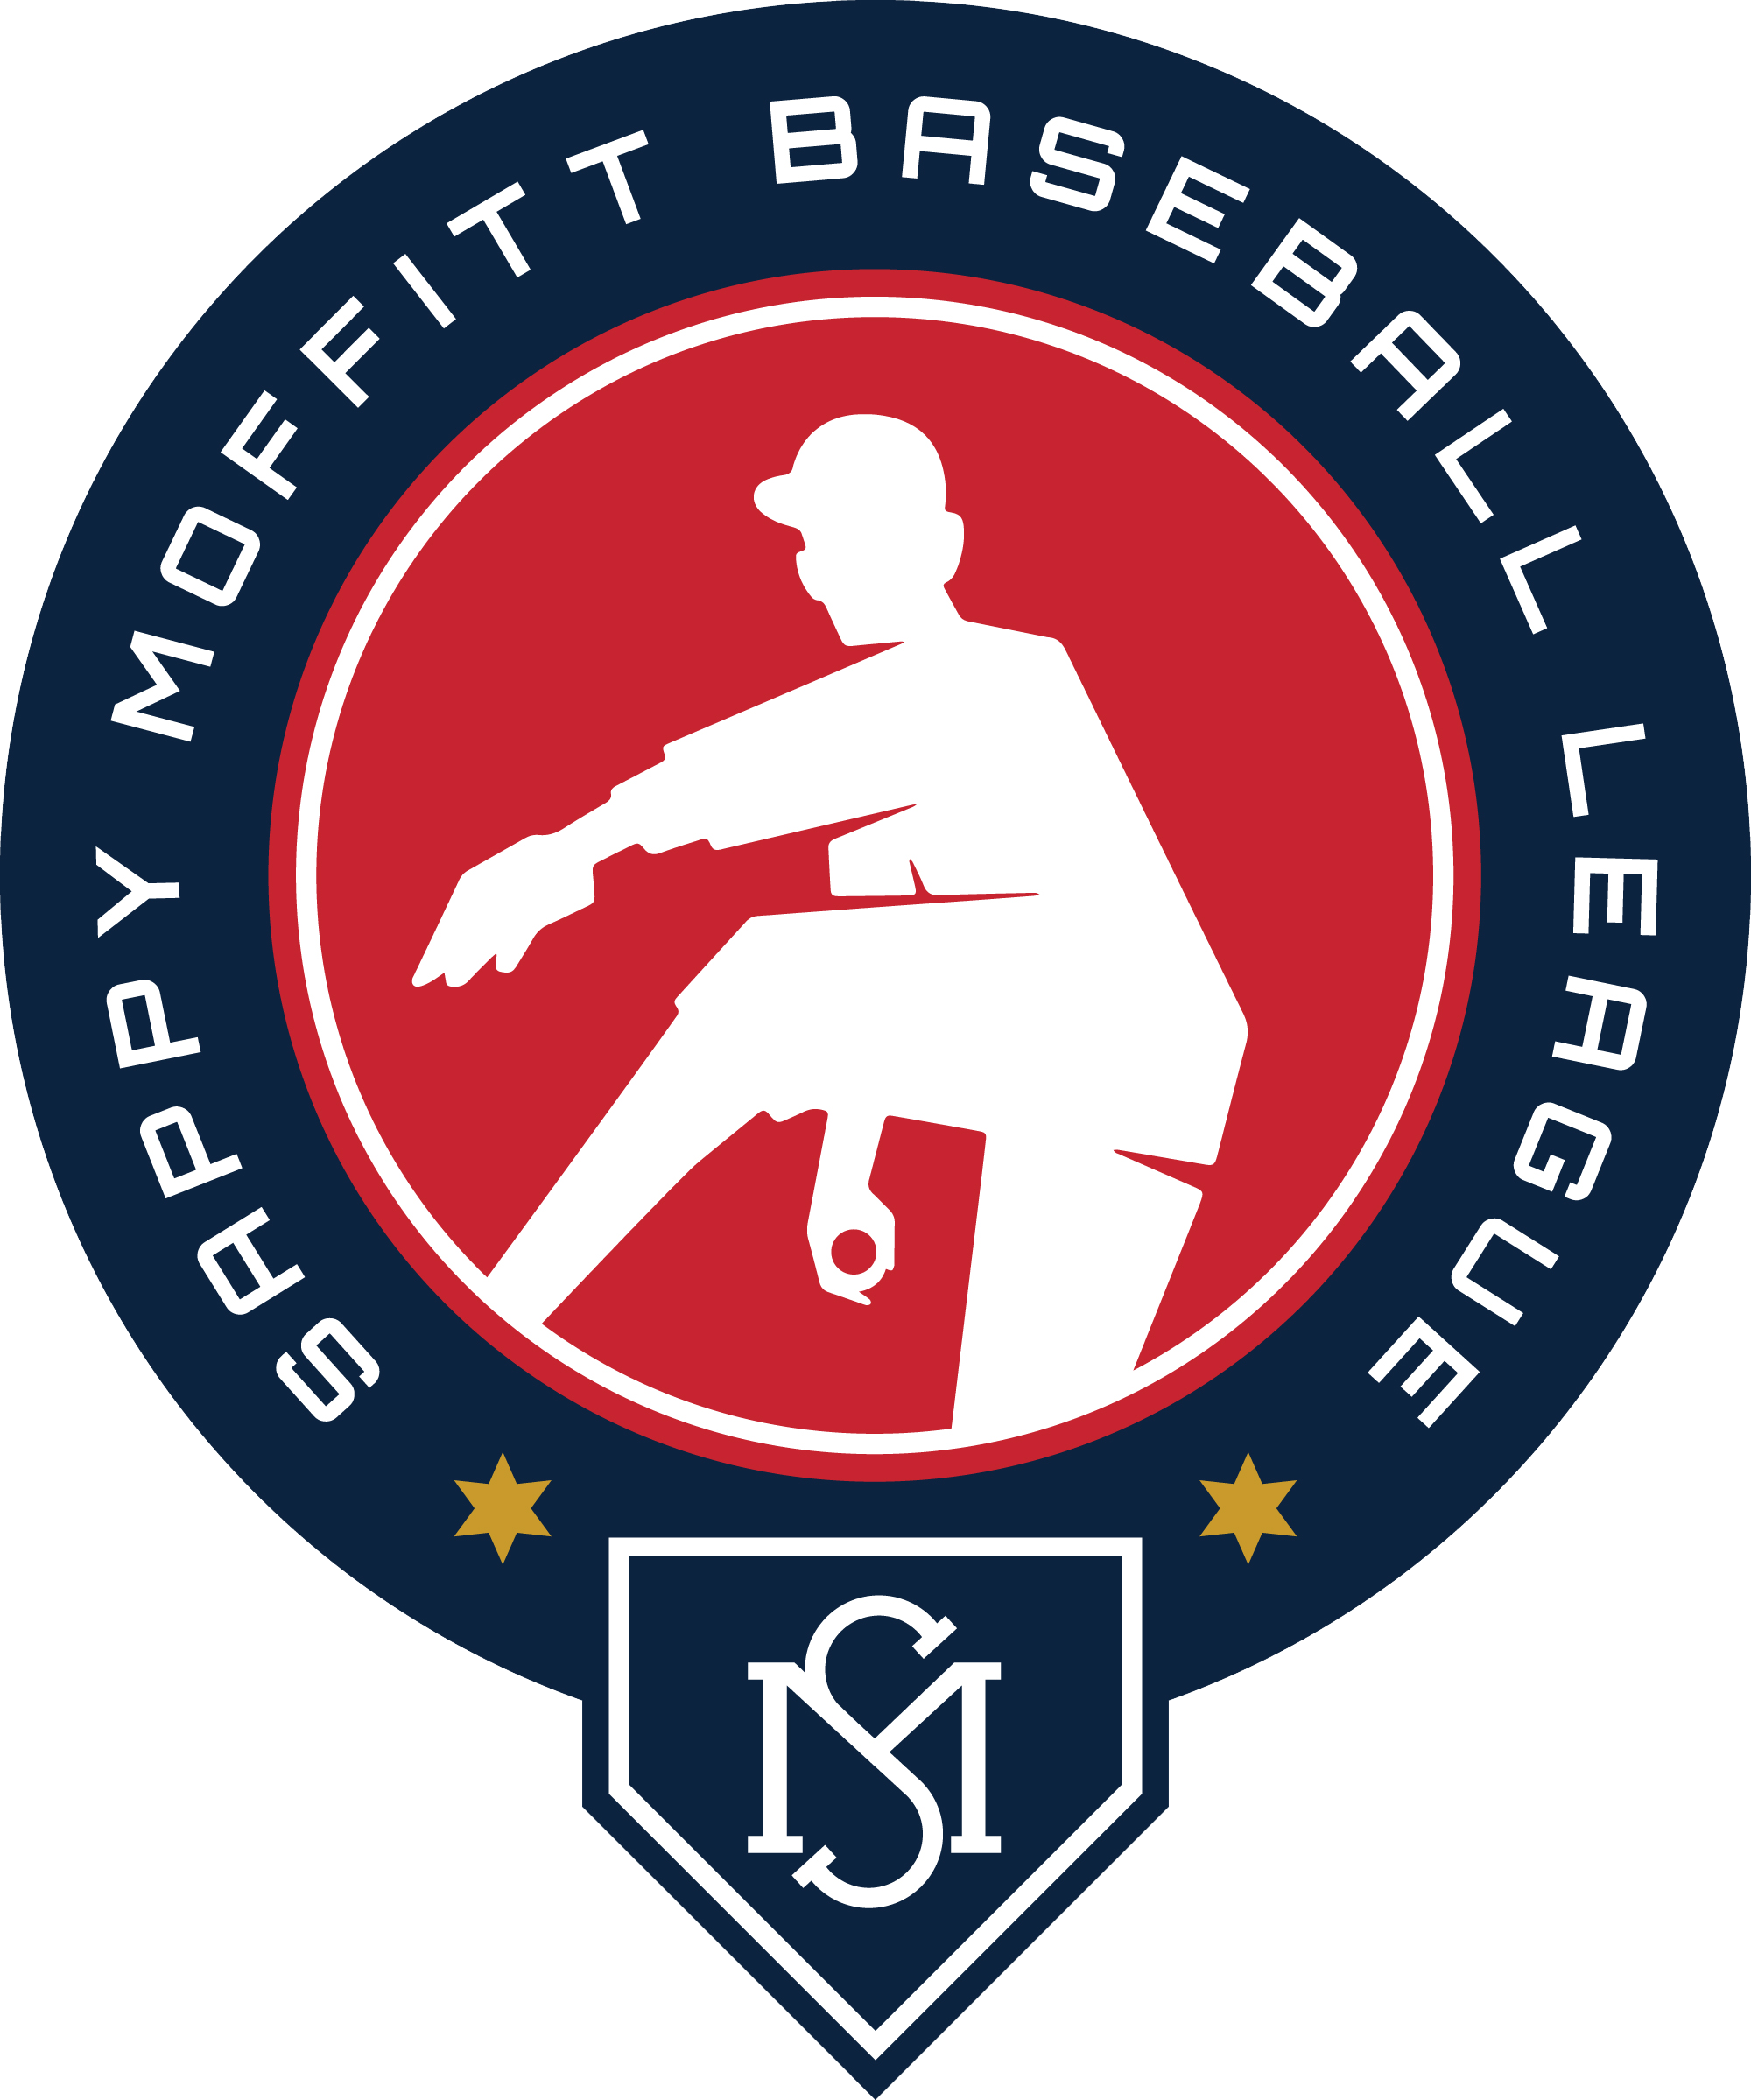 Sappy Moffitt Baseball League